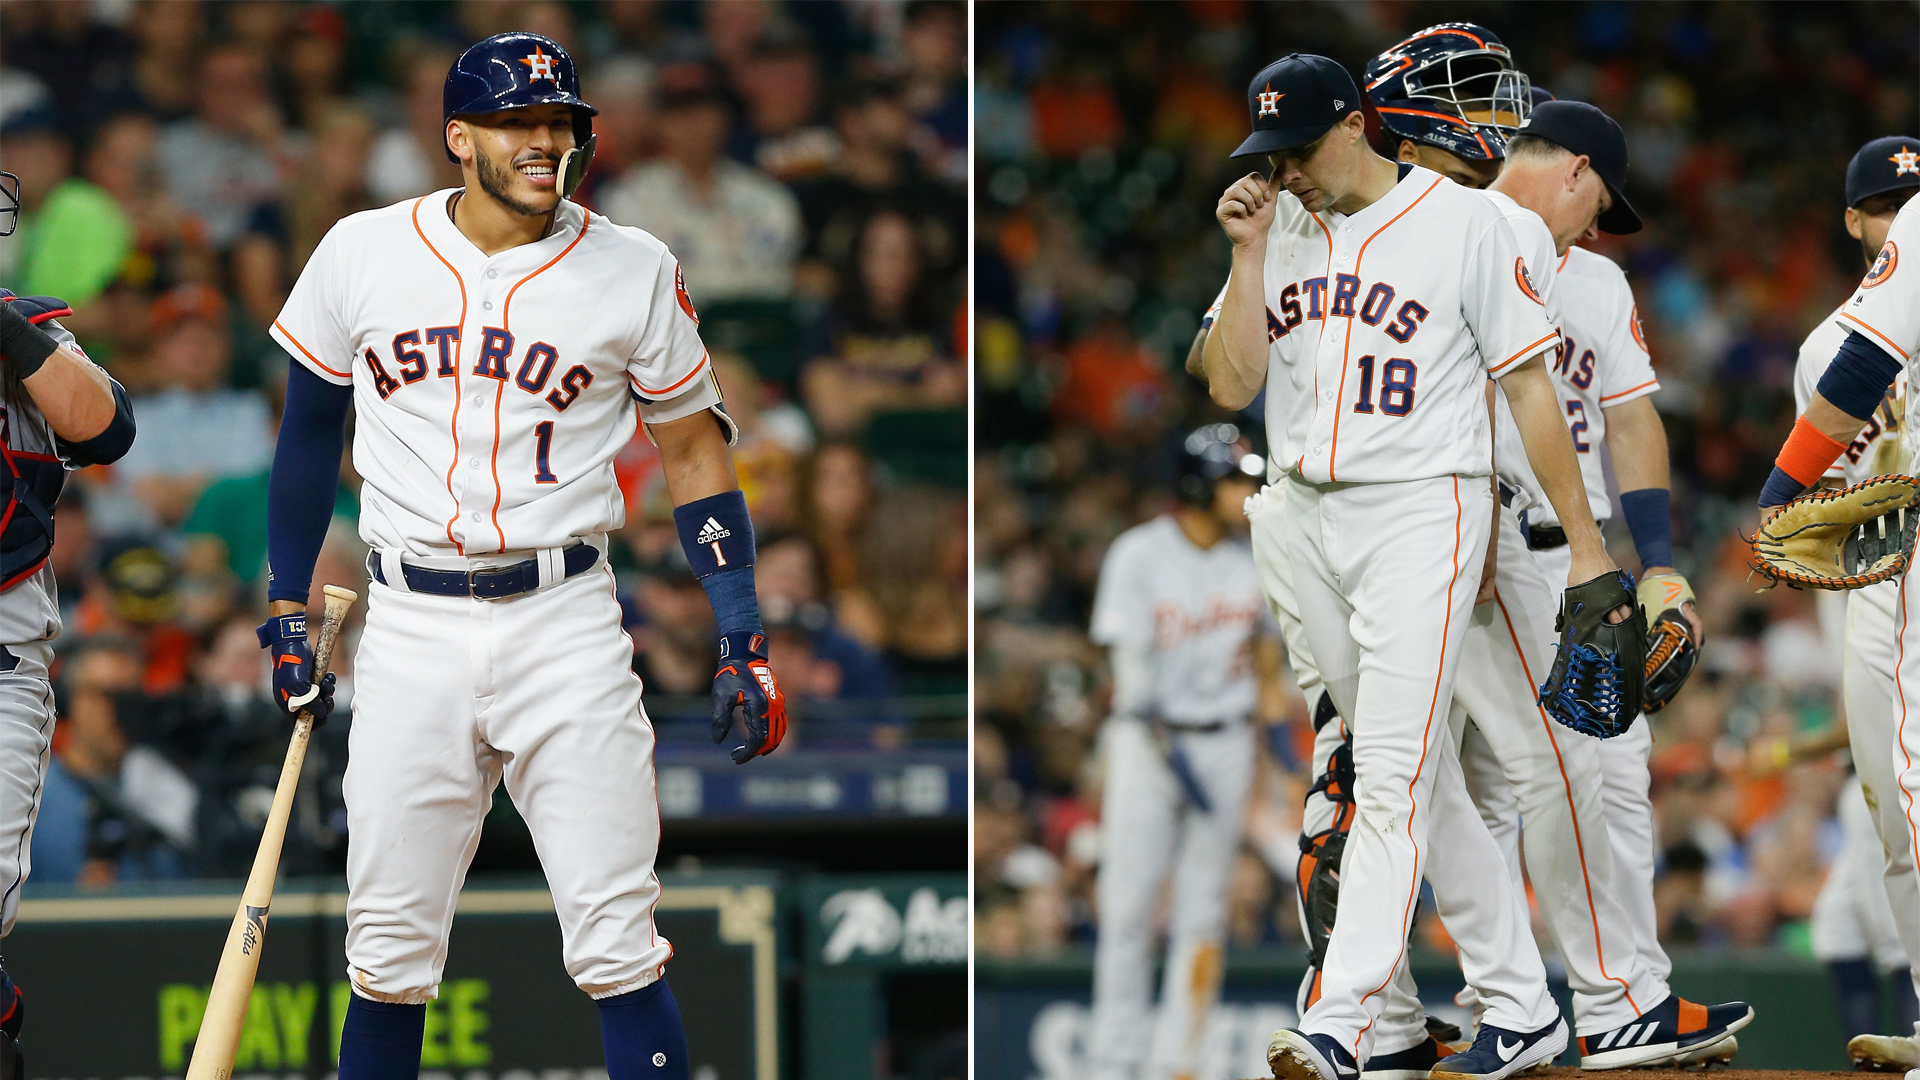 The Astros will be without Carlos Correa and Aaron Sanchez for at least 10 days.